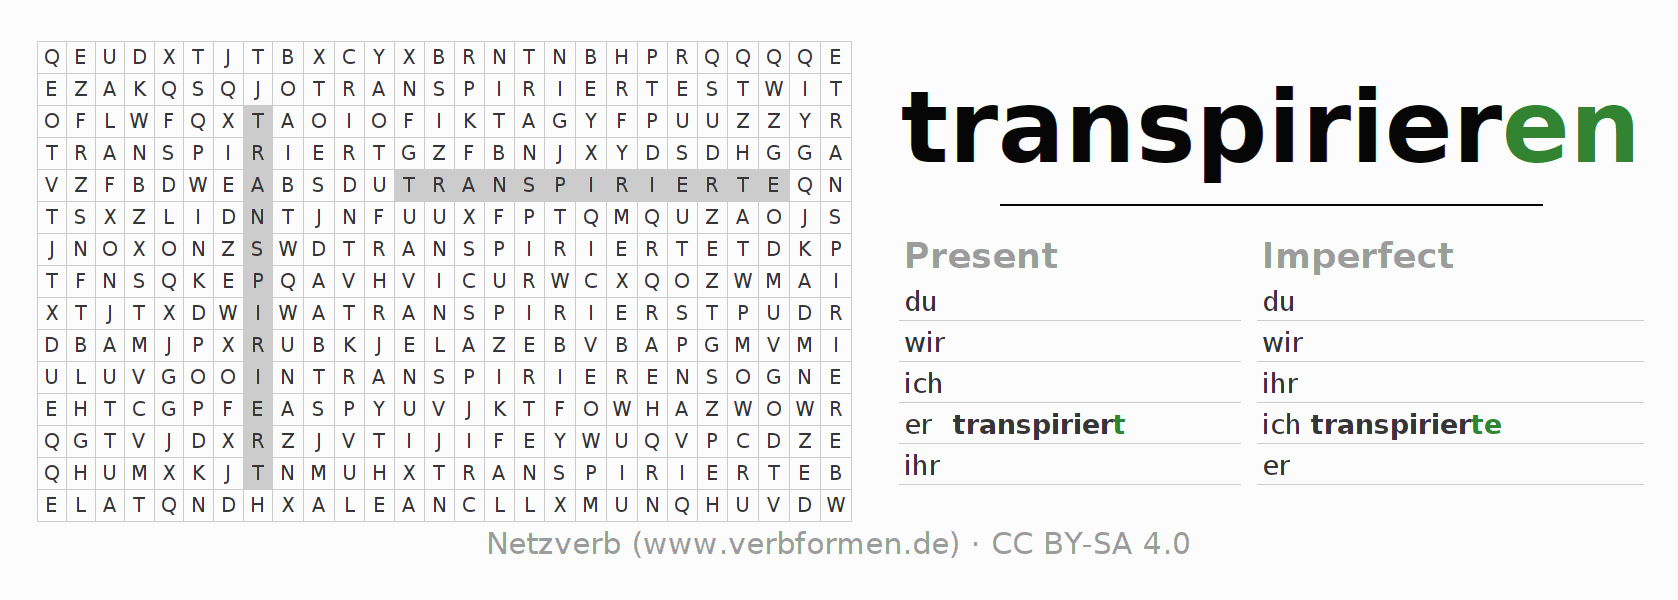 Word search puzzle for the conjugation of the verb transpirieren